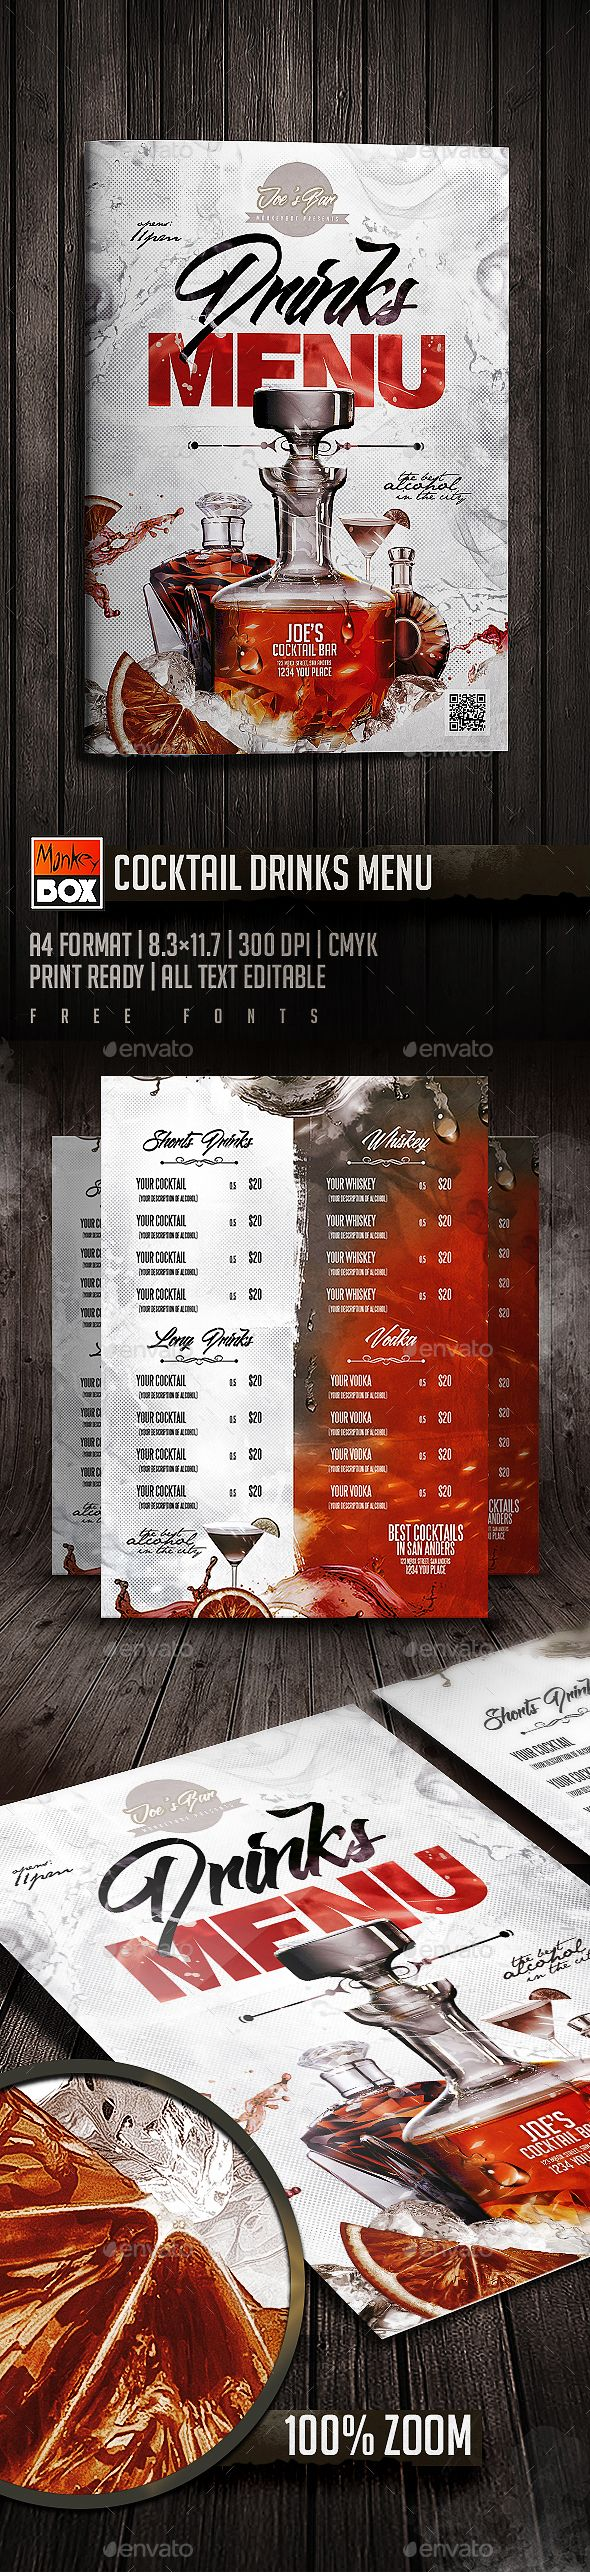 Cocktail Drinks Menu Template PSD